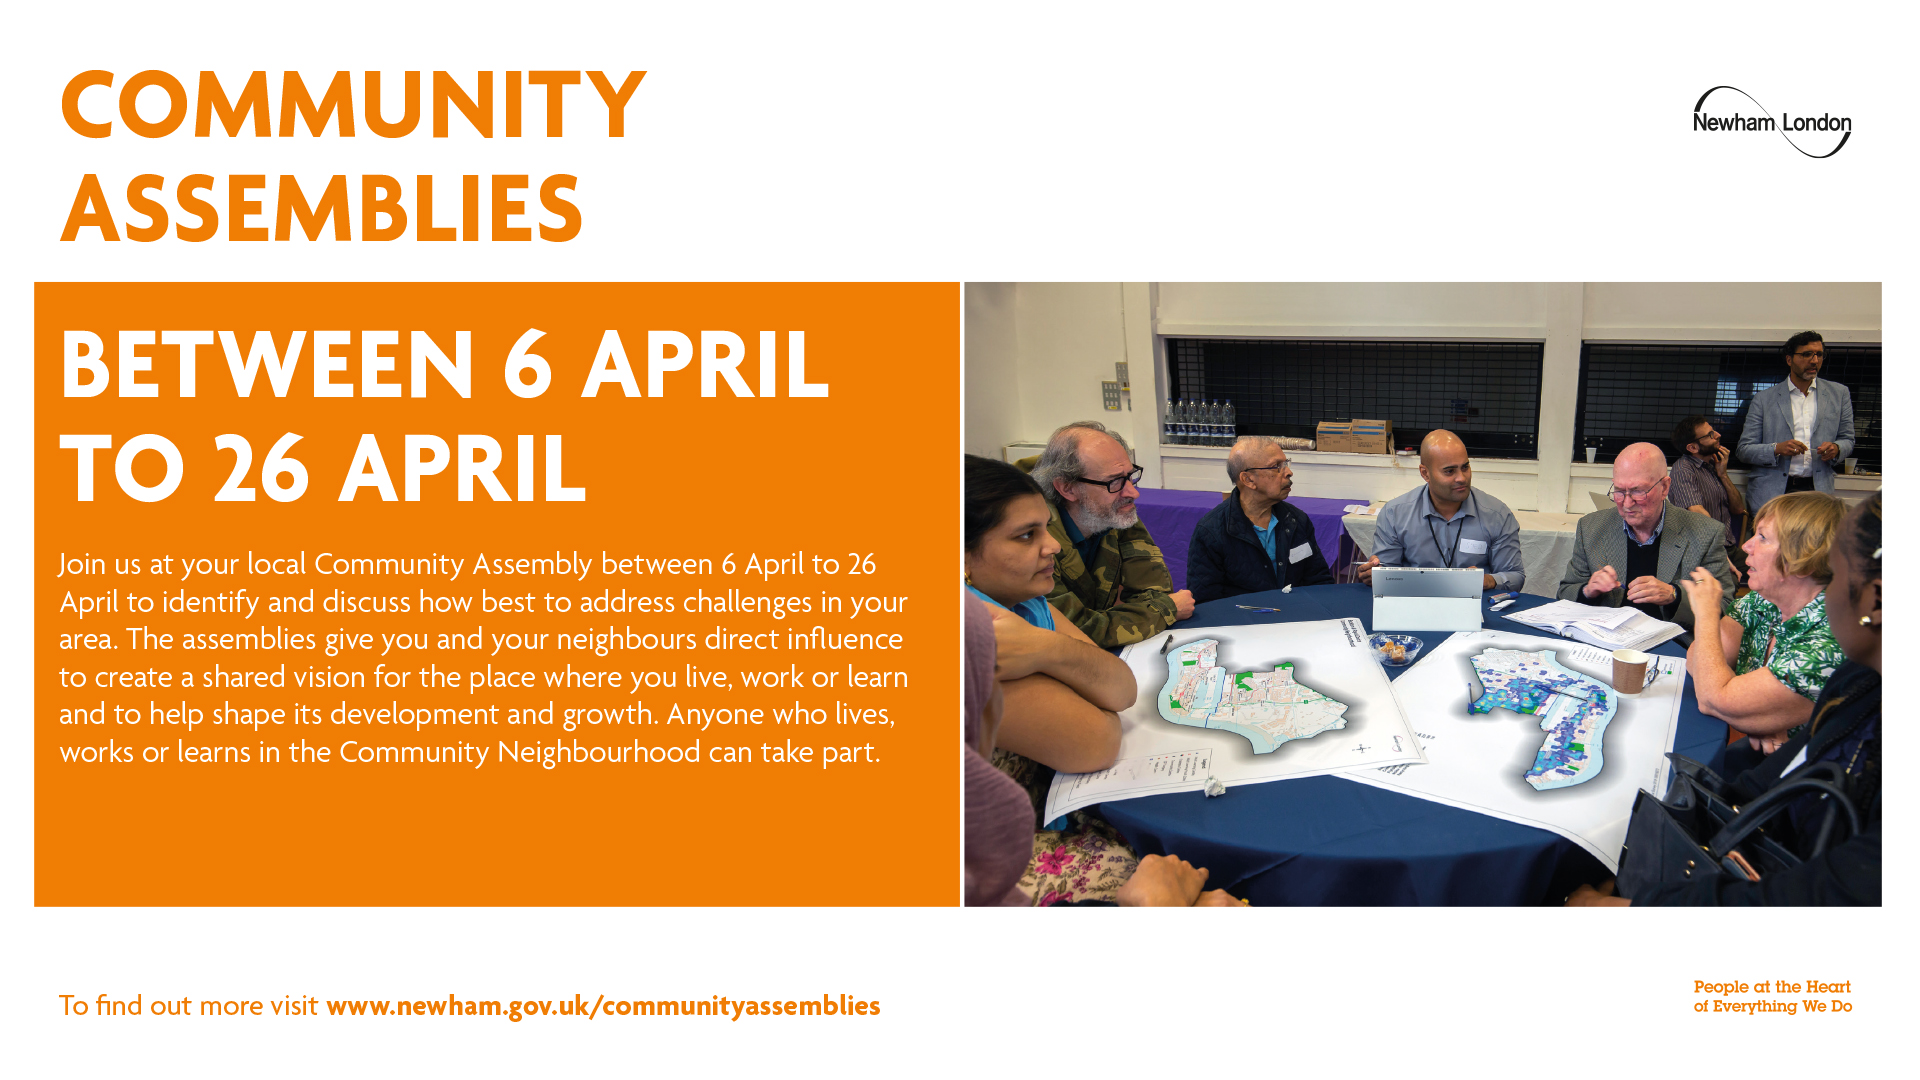 Community assemblies. Between 6 April to 26 April.